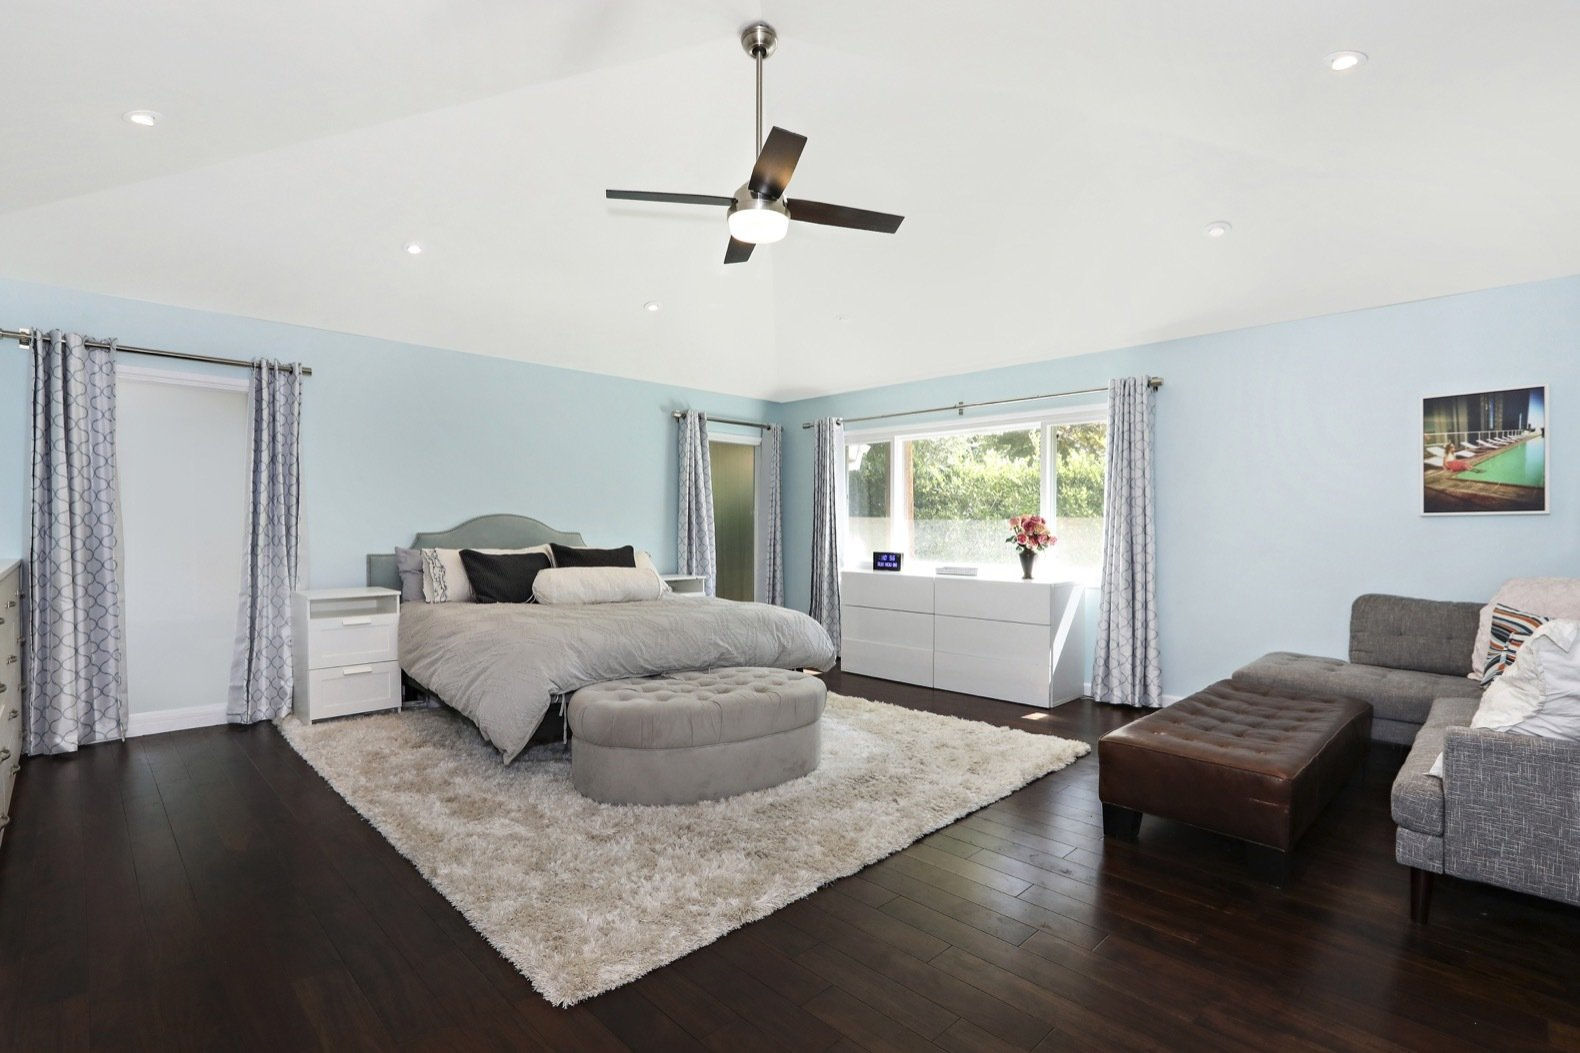 Bedroom, Night Stands, Dark Hardwood, Storage, Ceiling, Bed, and Recessed An addition built by the former owners was gut renovated and transformed into a new master suite with hardwood floors.   Best Bedroom Dark Hardwood Night Stands Storage Photos from Own Comedian Adam Carolla's Renovated L.A. Midcentury For $3.4M